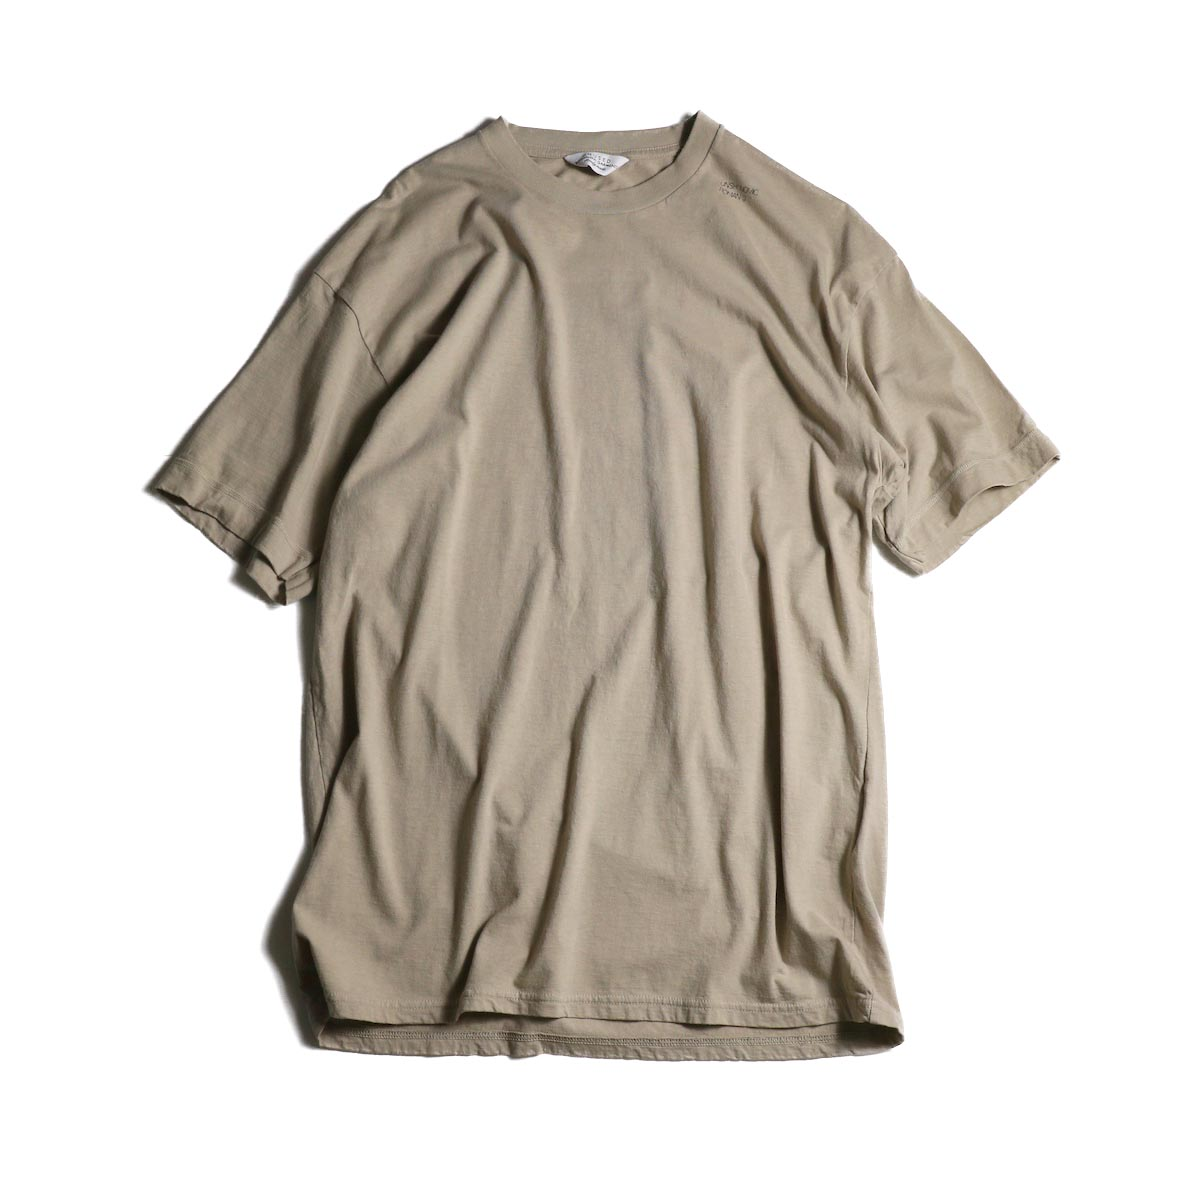 UNUSED / US1575 Crew Neck S/S Tee (Beige)